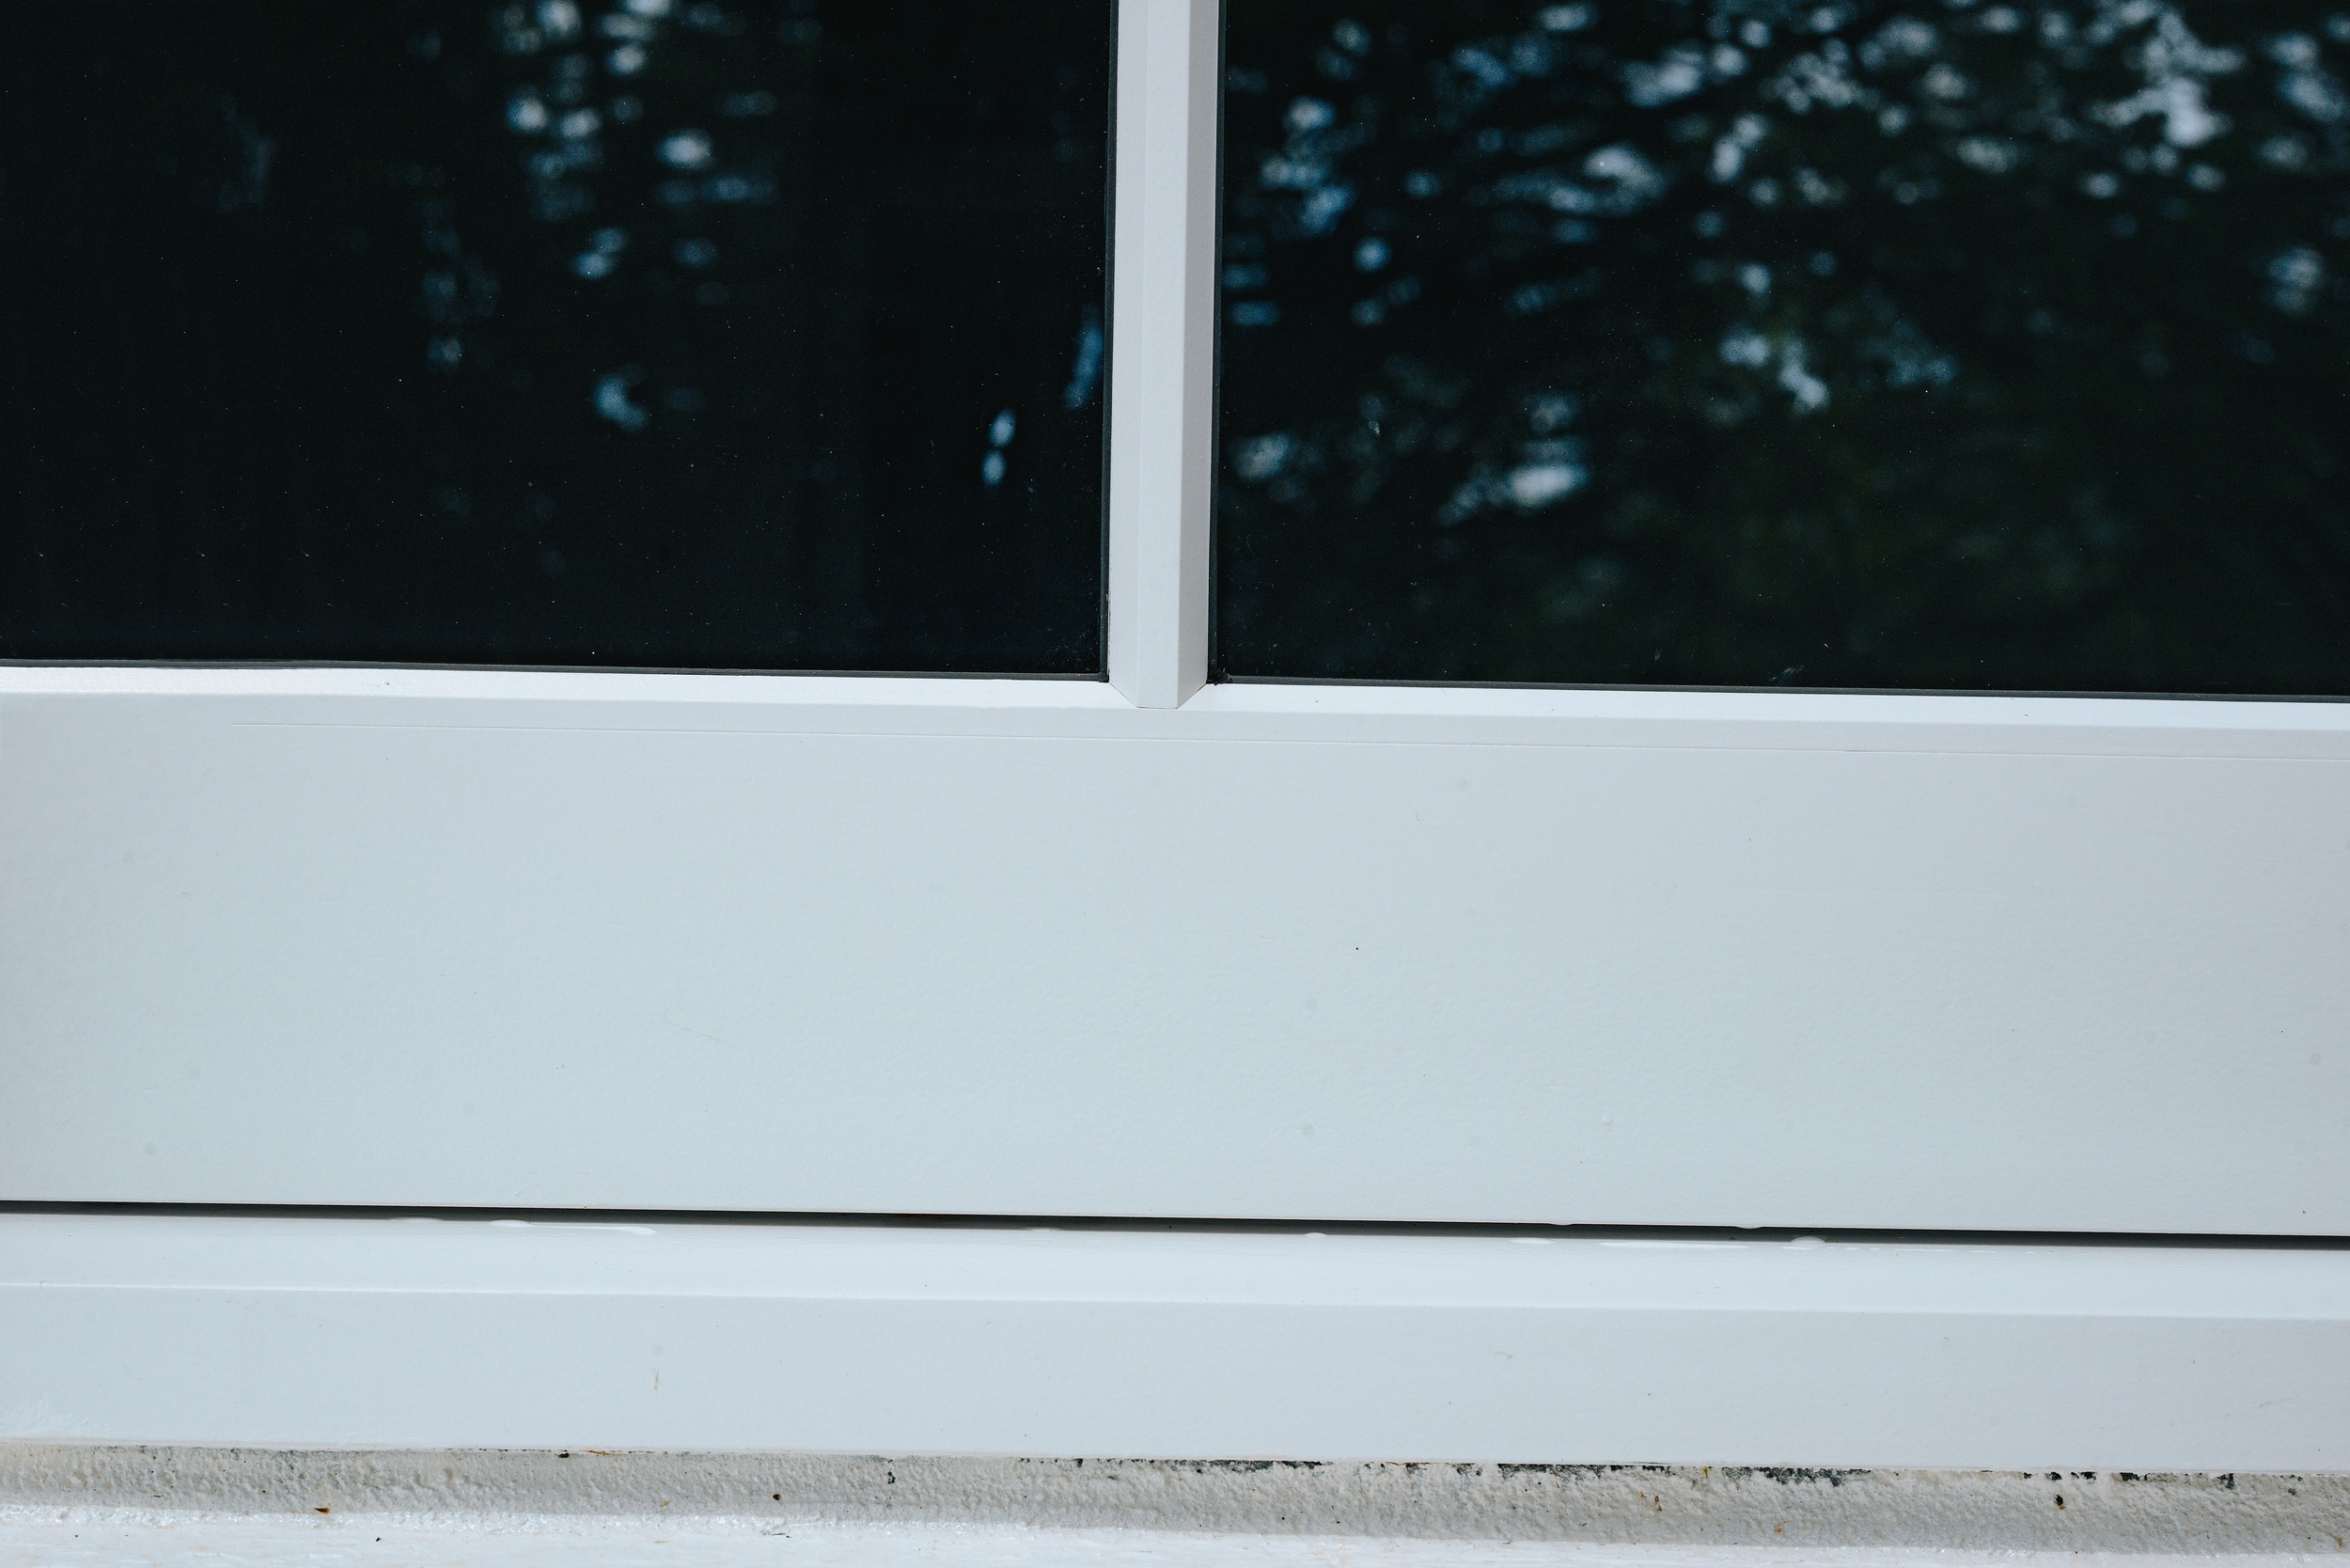 close up view of sliding sash wooden window